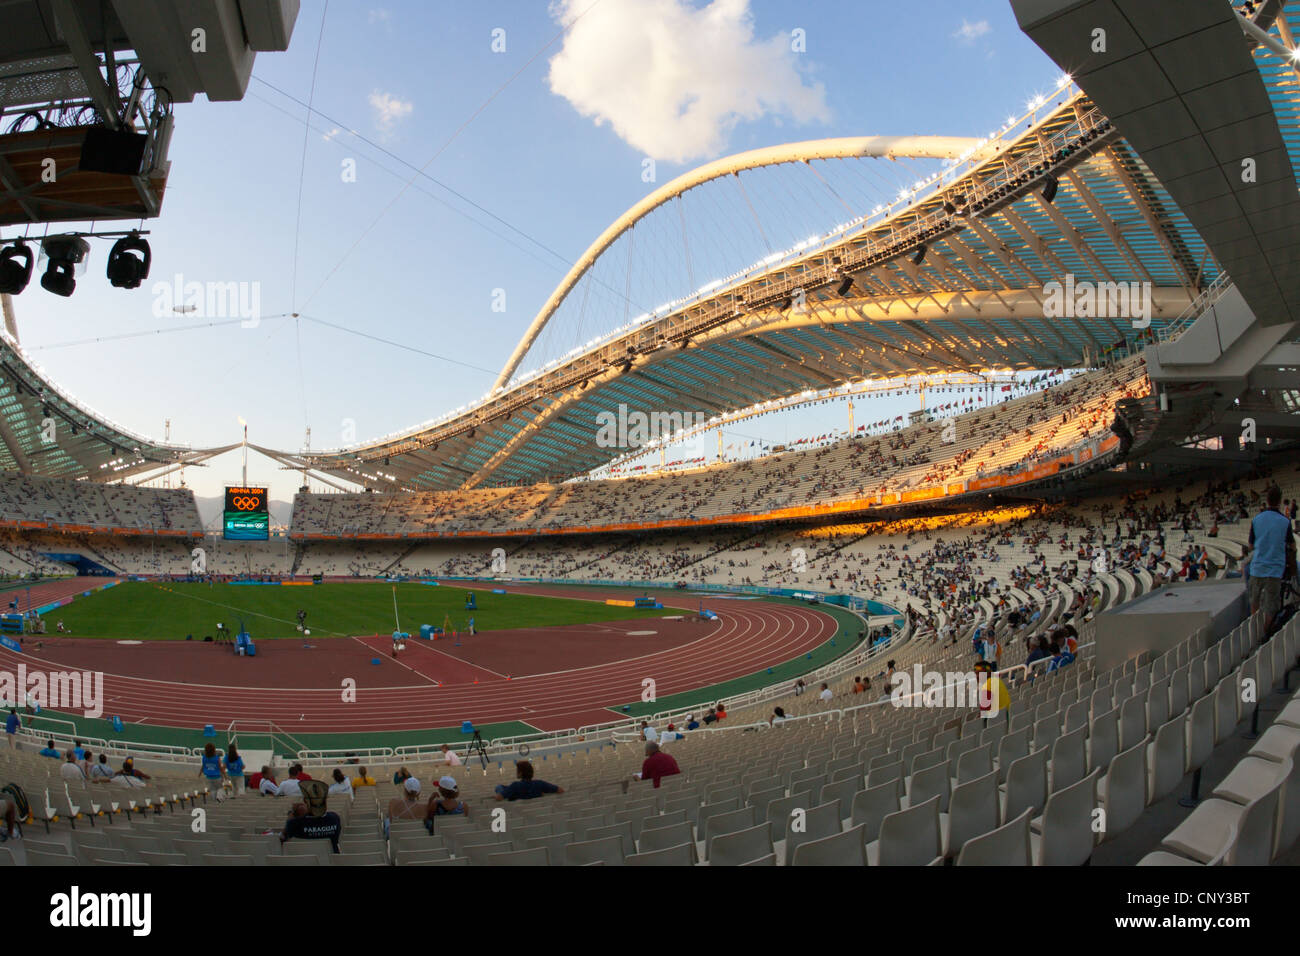 General view of Olympic Stadium in Athens, Greece August 28, 2004. - Stock Image